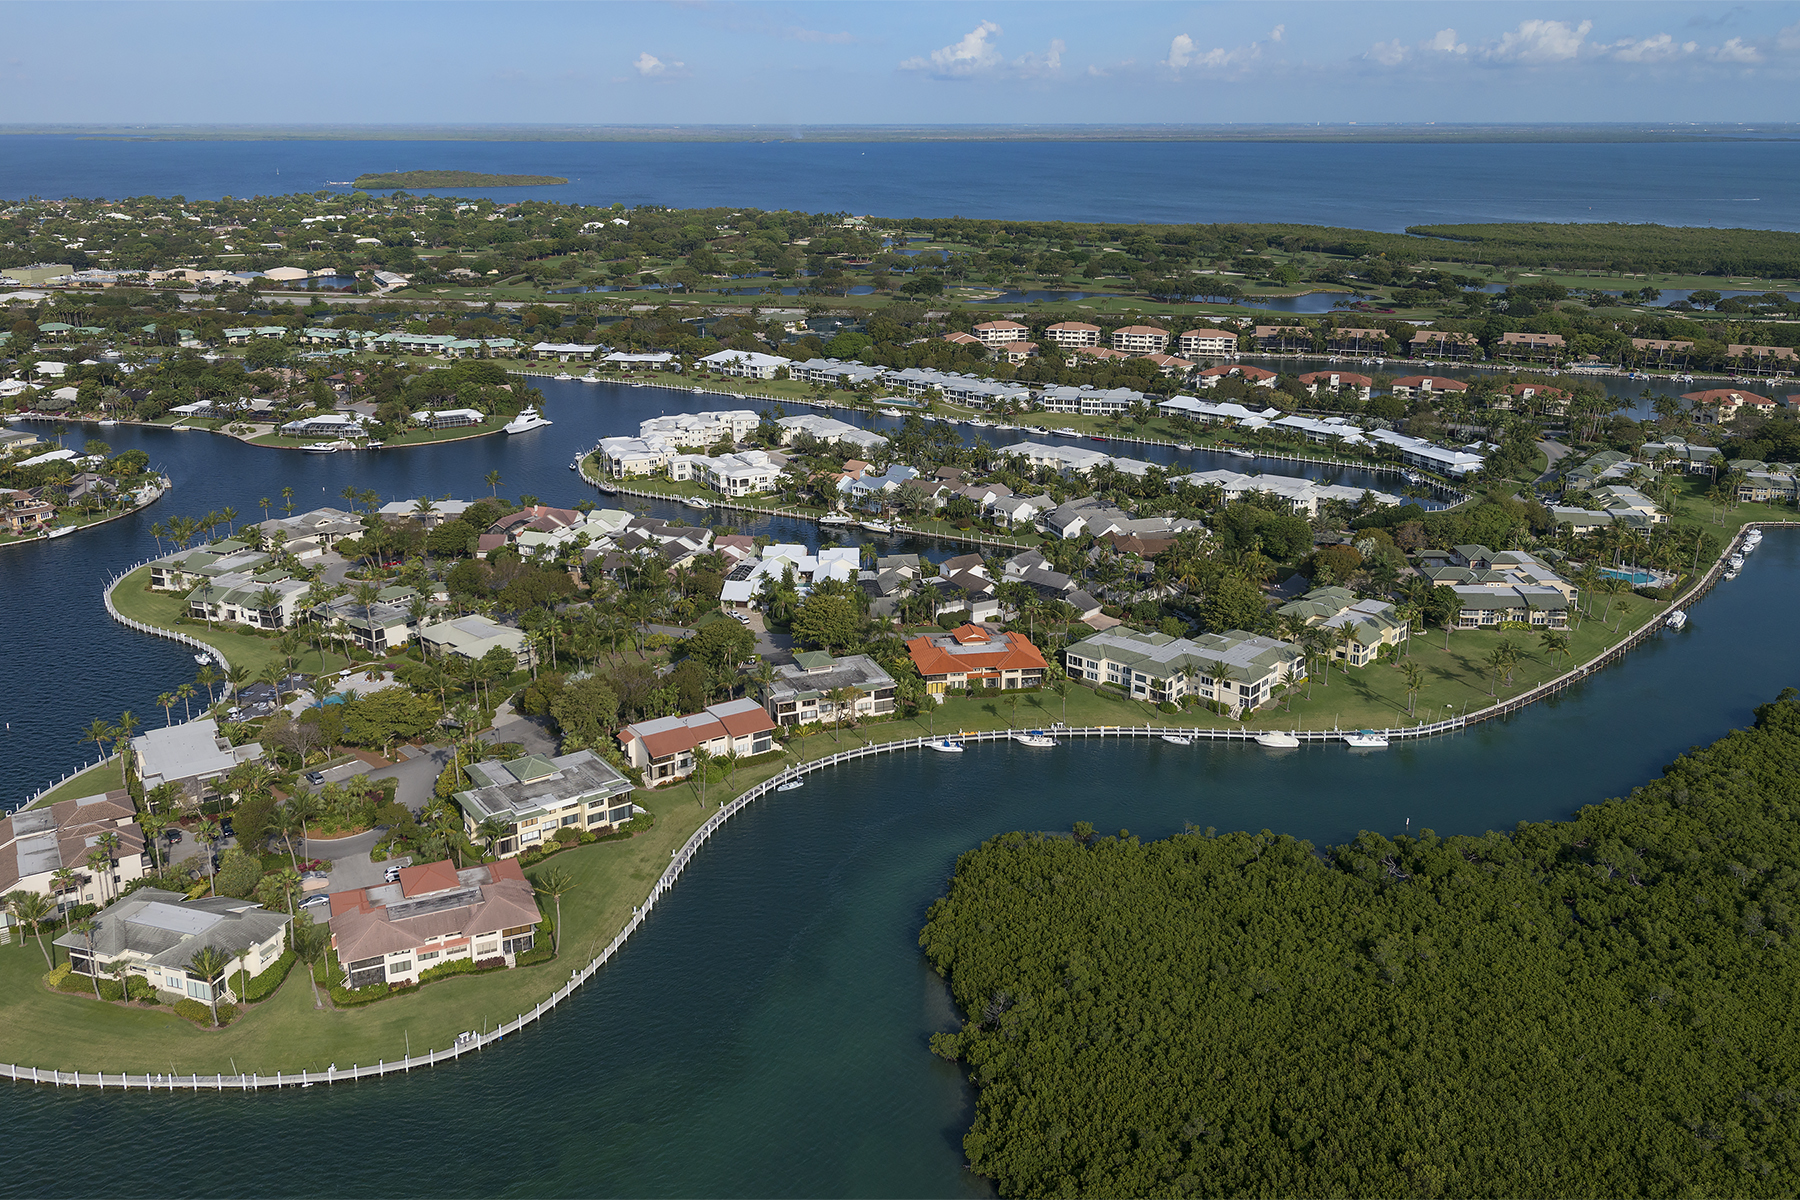 Condomínio para Venda às Waterfront Condominium at Ocean Reef 43 Pumpkin Cay Road, Unit B Ocean Reef Community, Key Largo, Florida, 33037 Estados Unidos